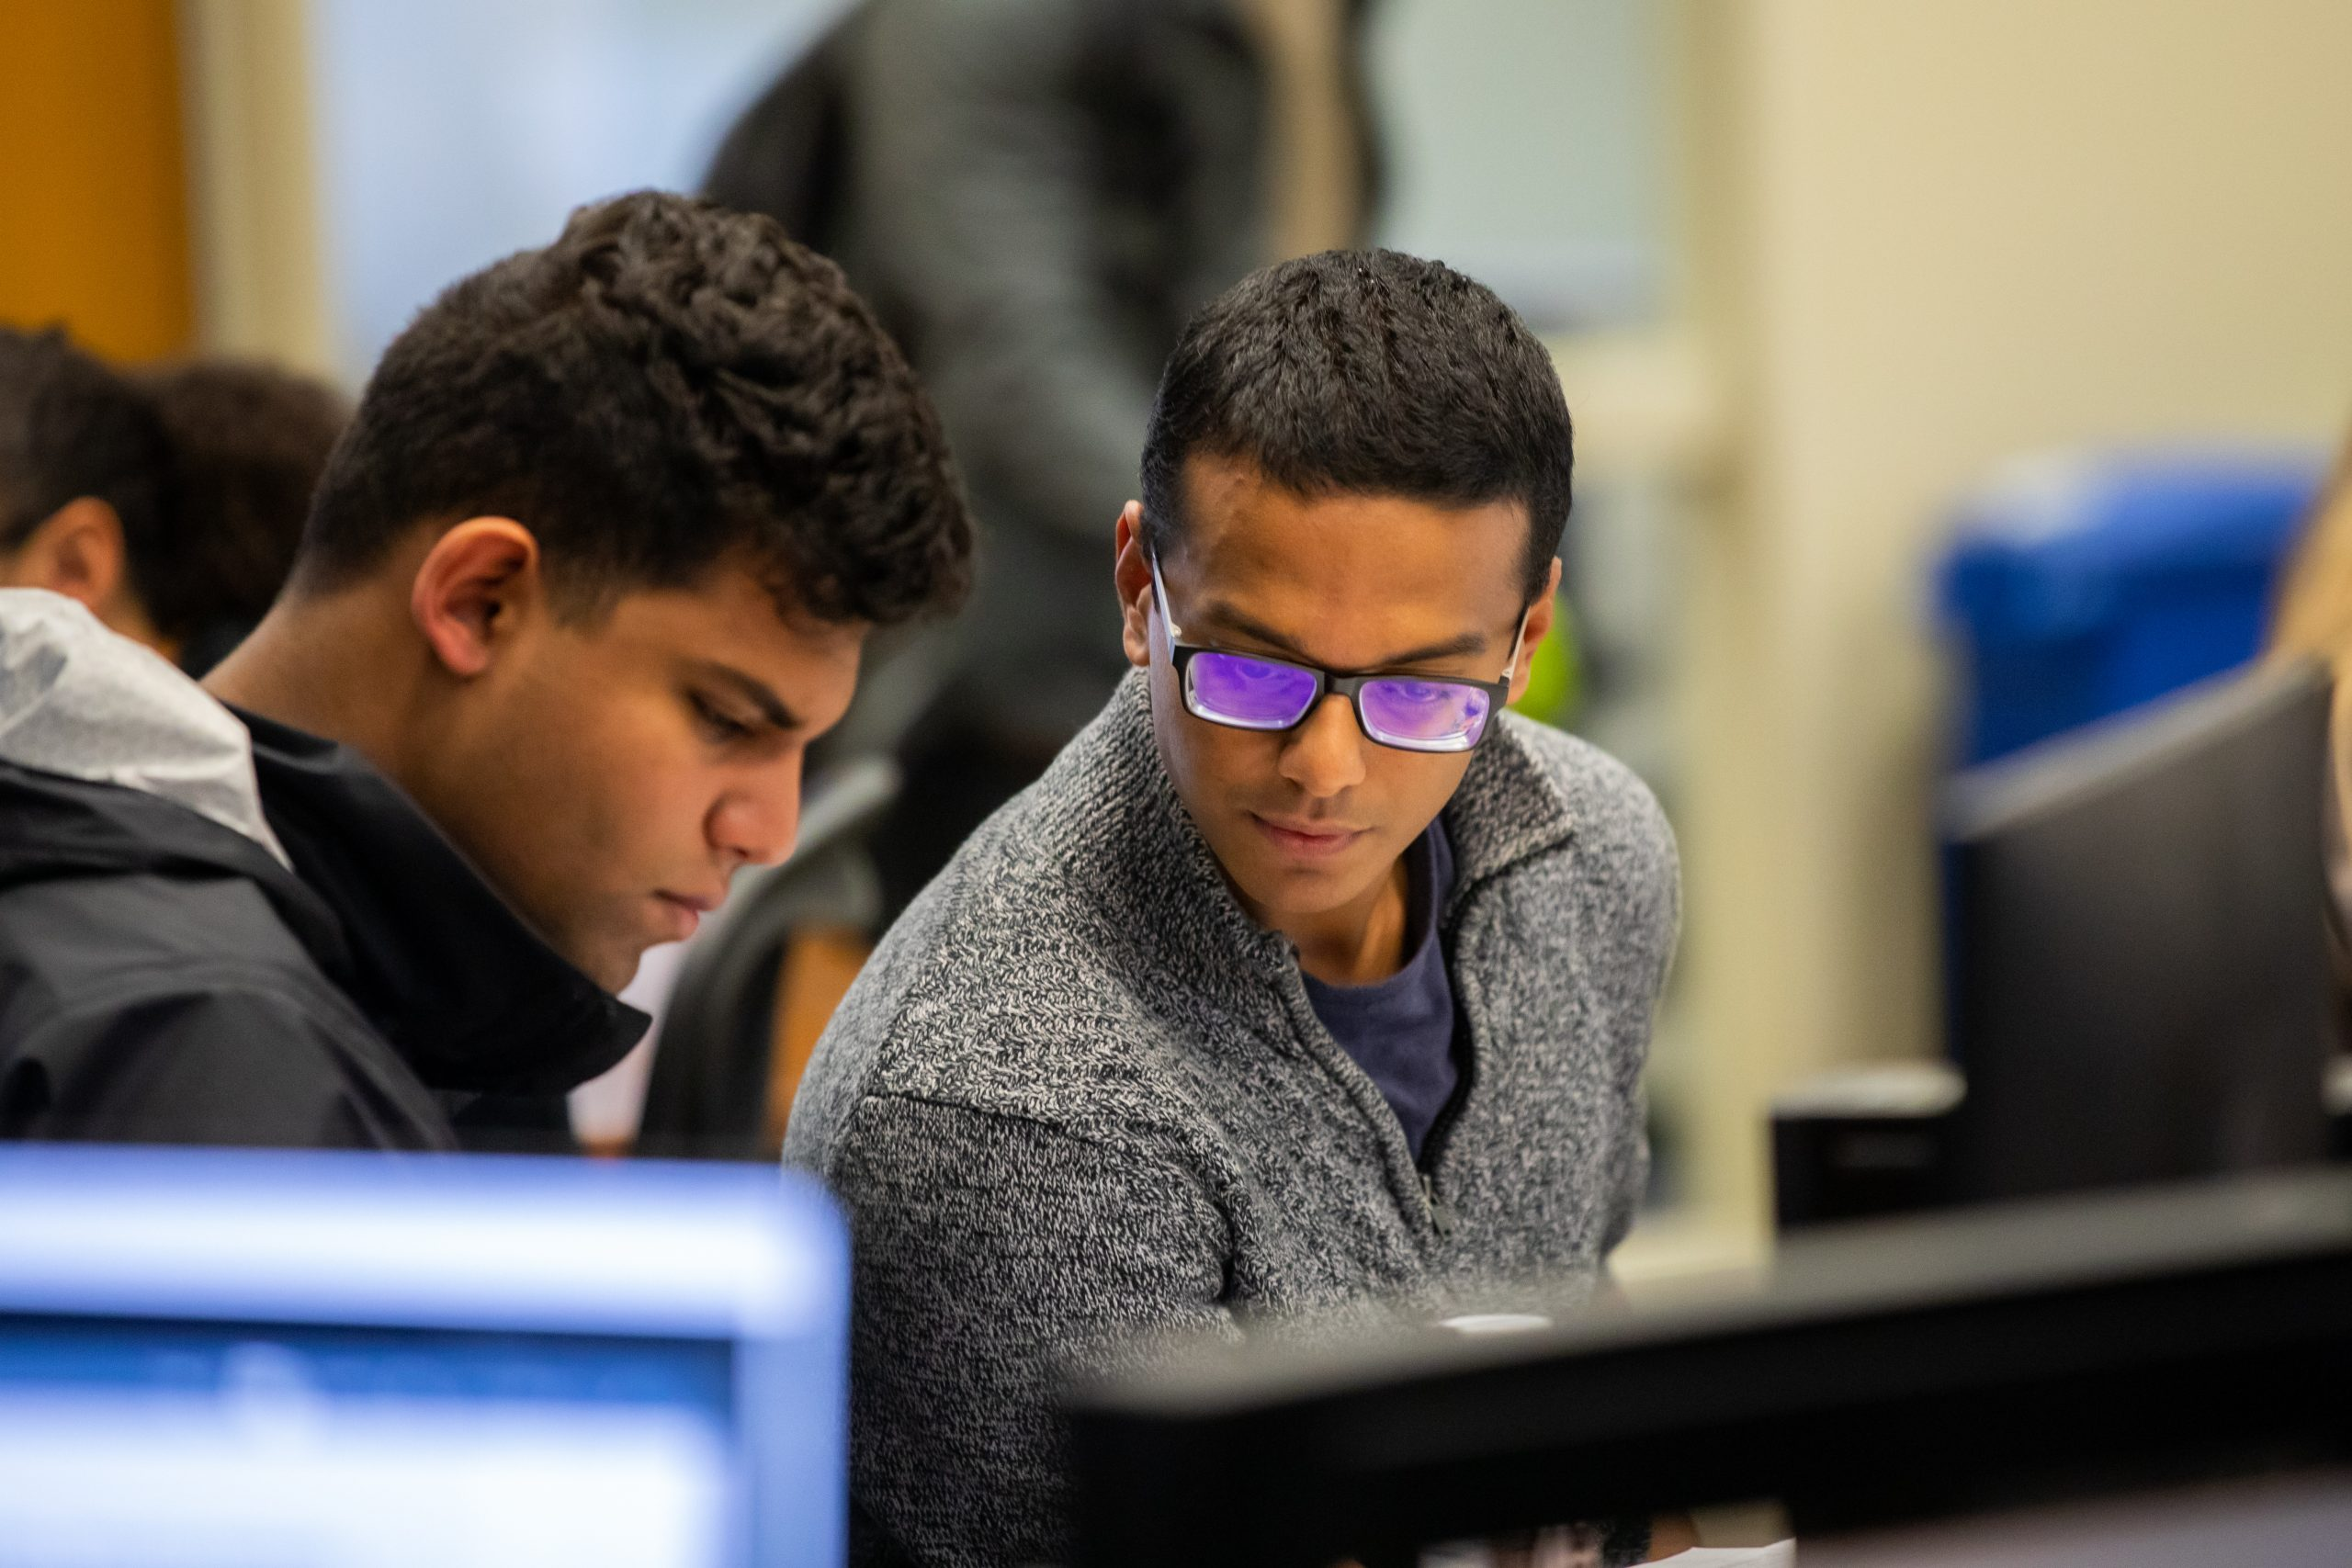 Students studying during finals inside Hodges Library on December 10, 2019. Photo by Steven Bridges/University of Tennessee